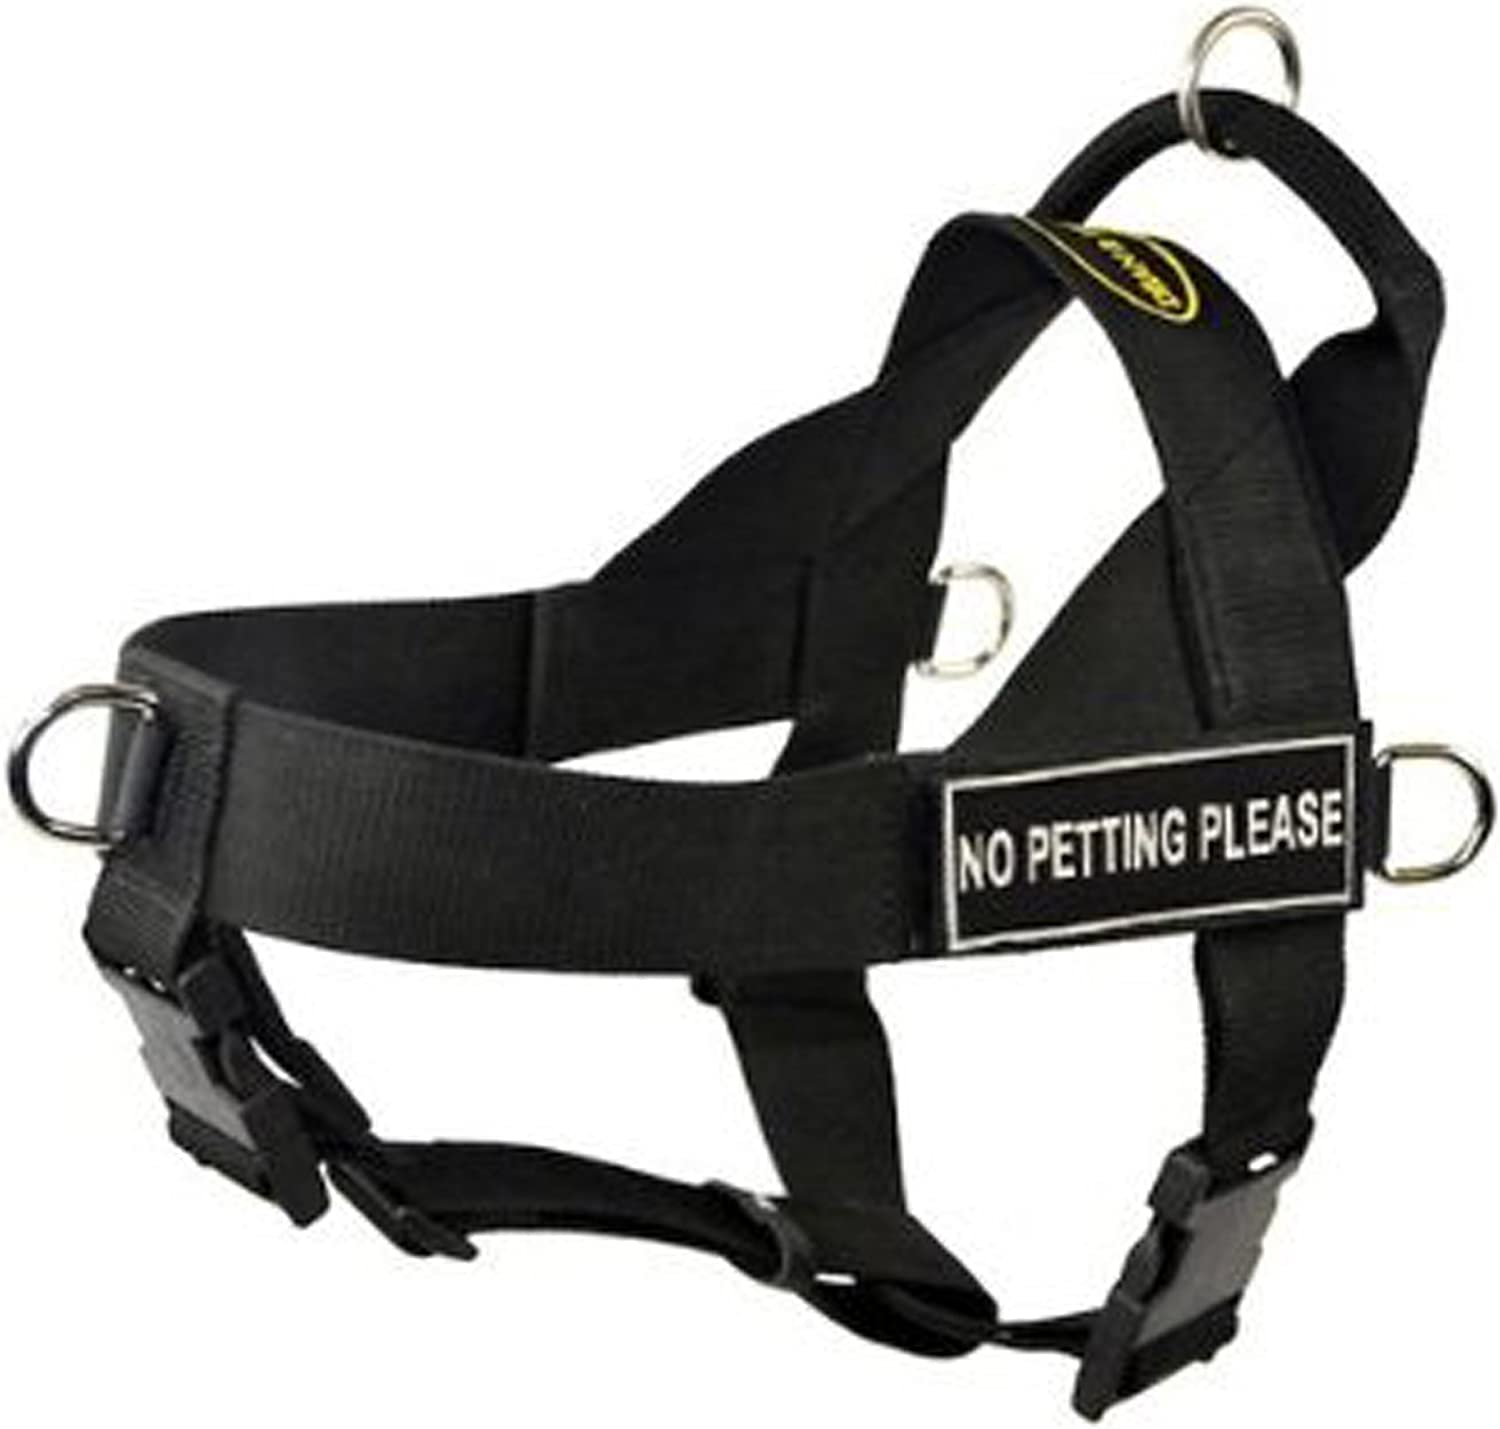 DT Universal No Pull Dog Harness, No Petting Please, Black, Medium  Fits Girth Size  66cm to 81cm